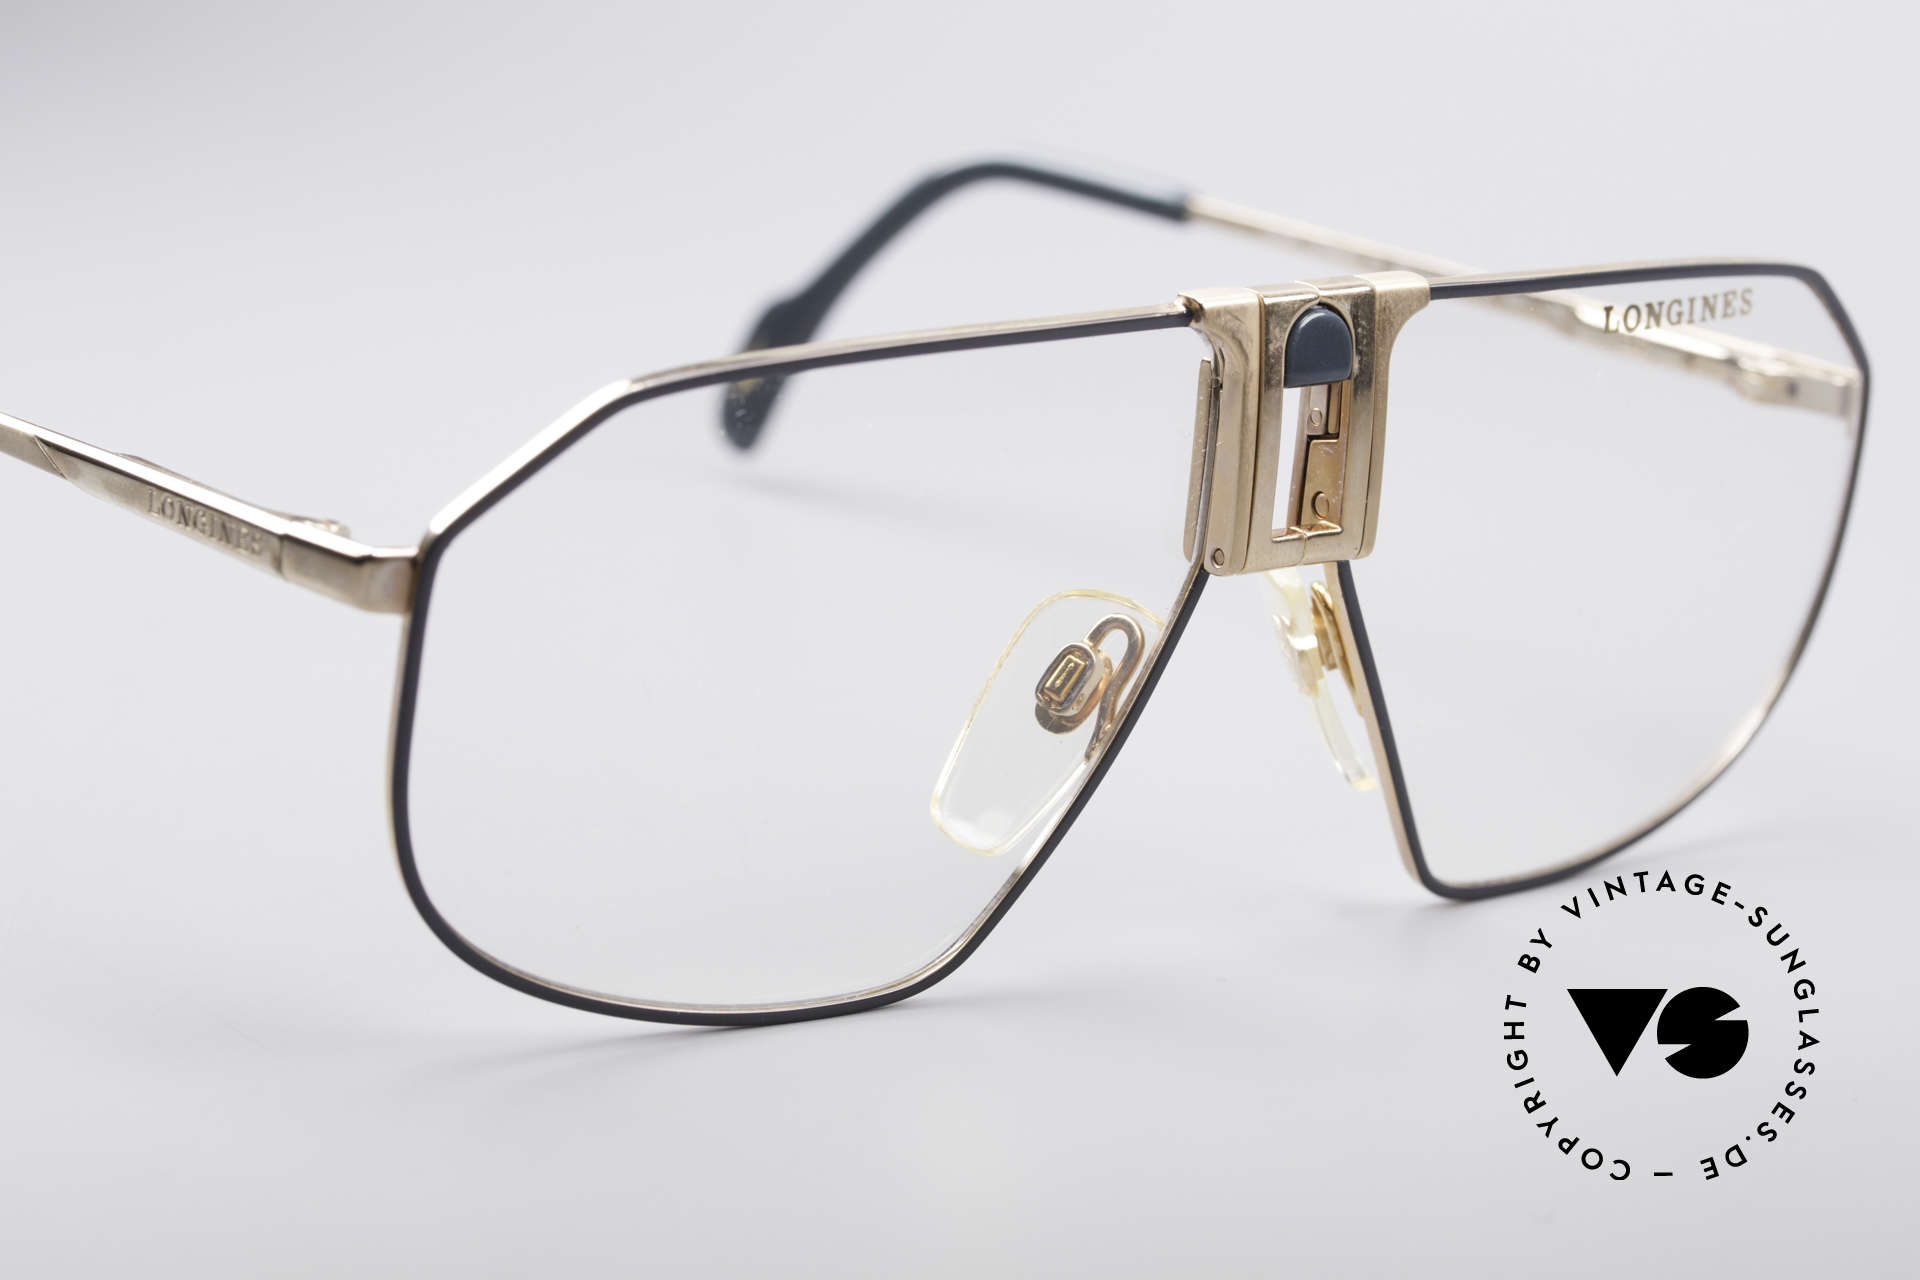 Longines 0153 80's Luxury Men's Frame, NO RETRO eyeglasses, but a true old 1980's ORIGINAL!, Made for Men